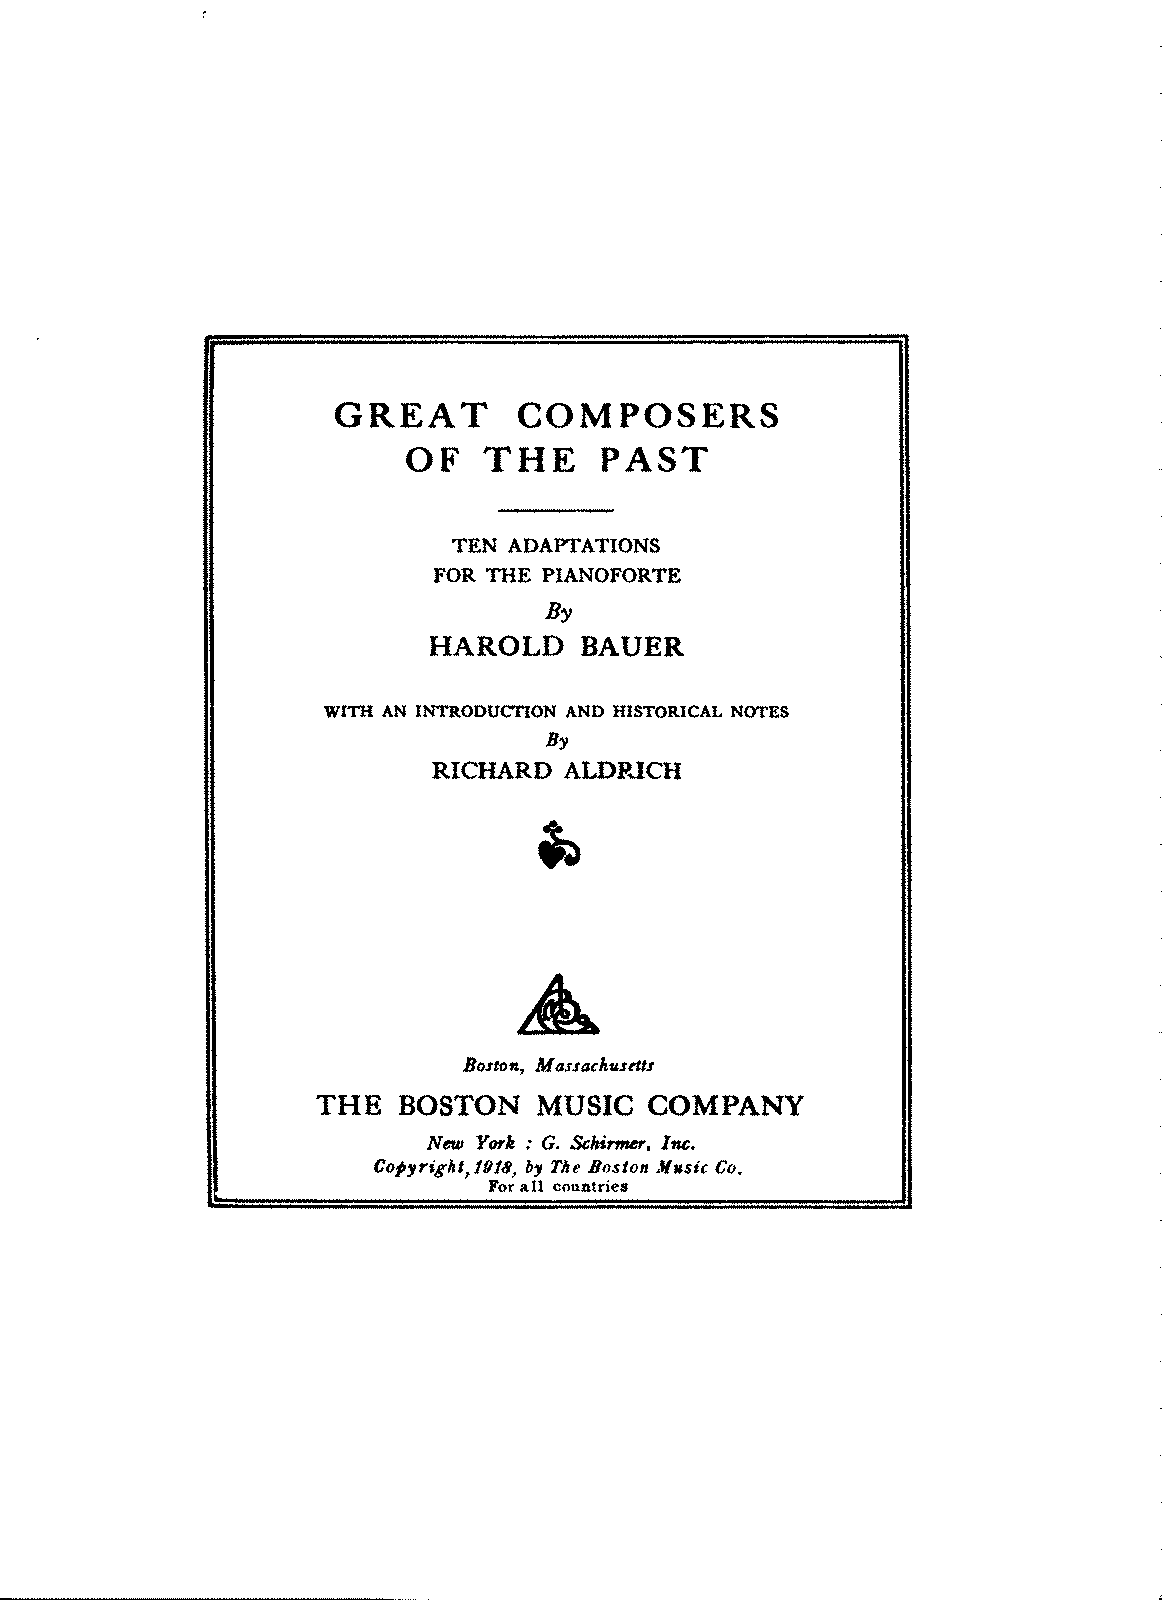 Bauer - Great Composers of the Past.pdf